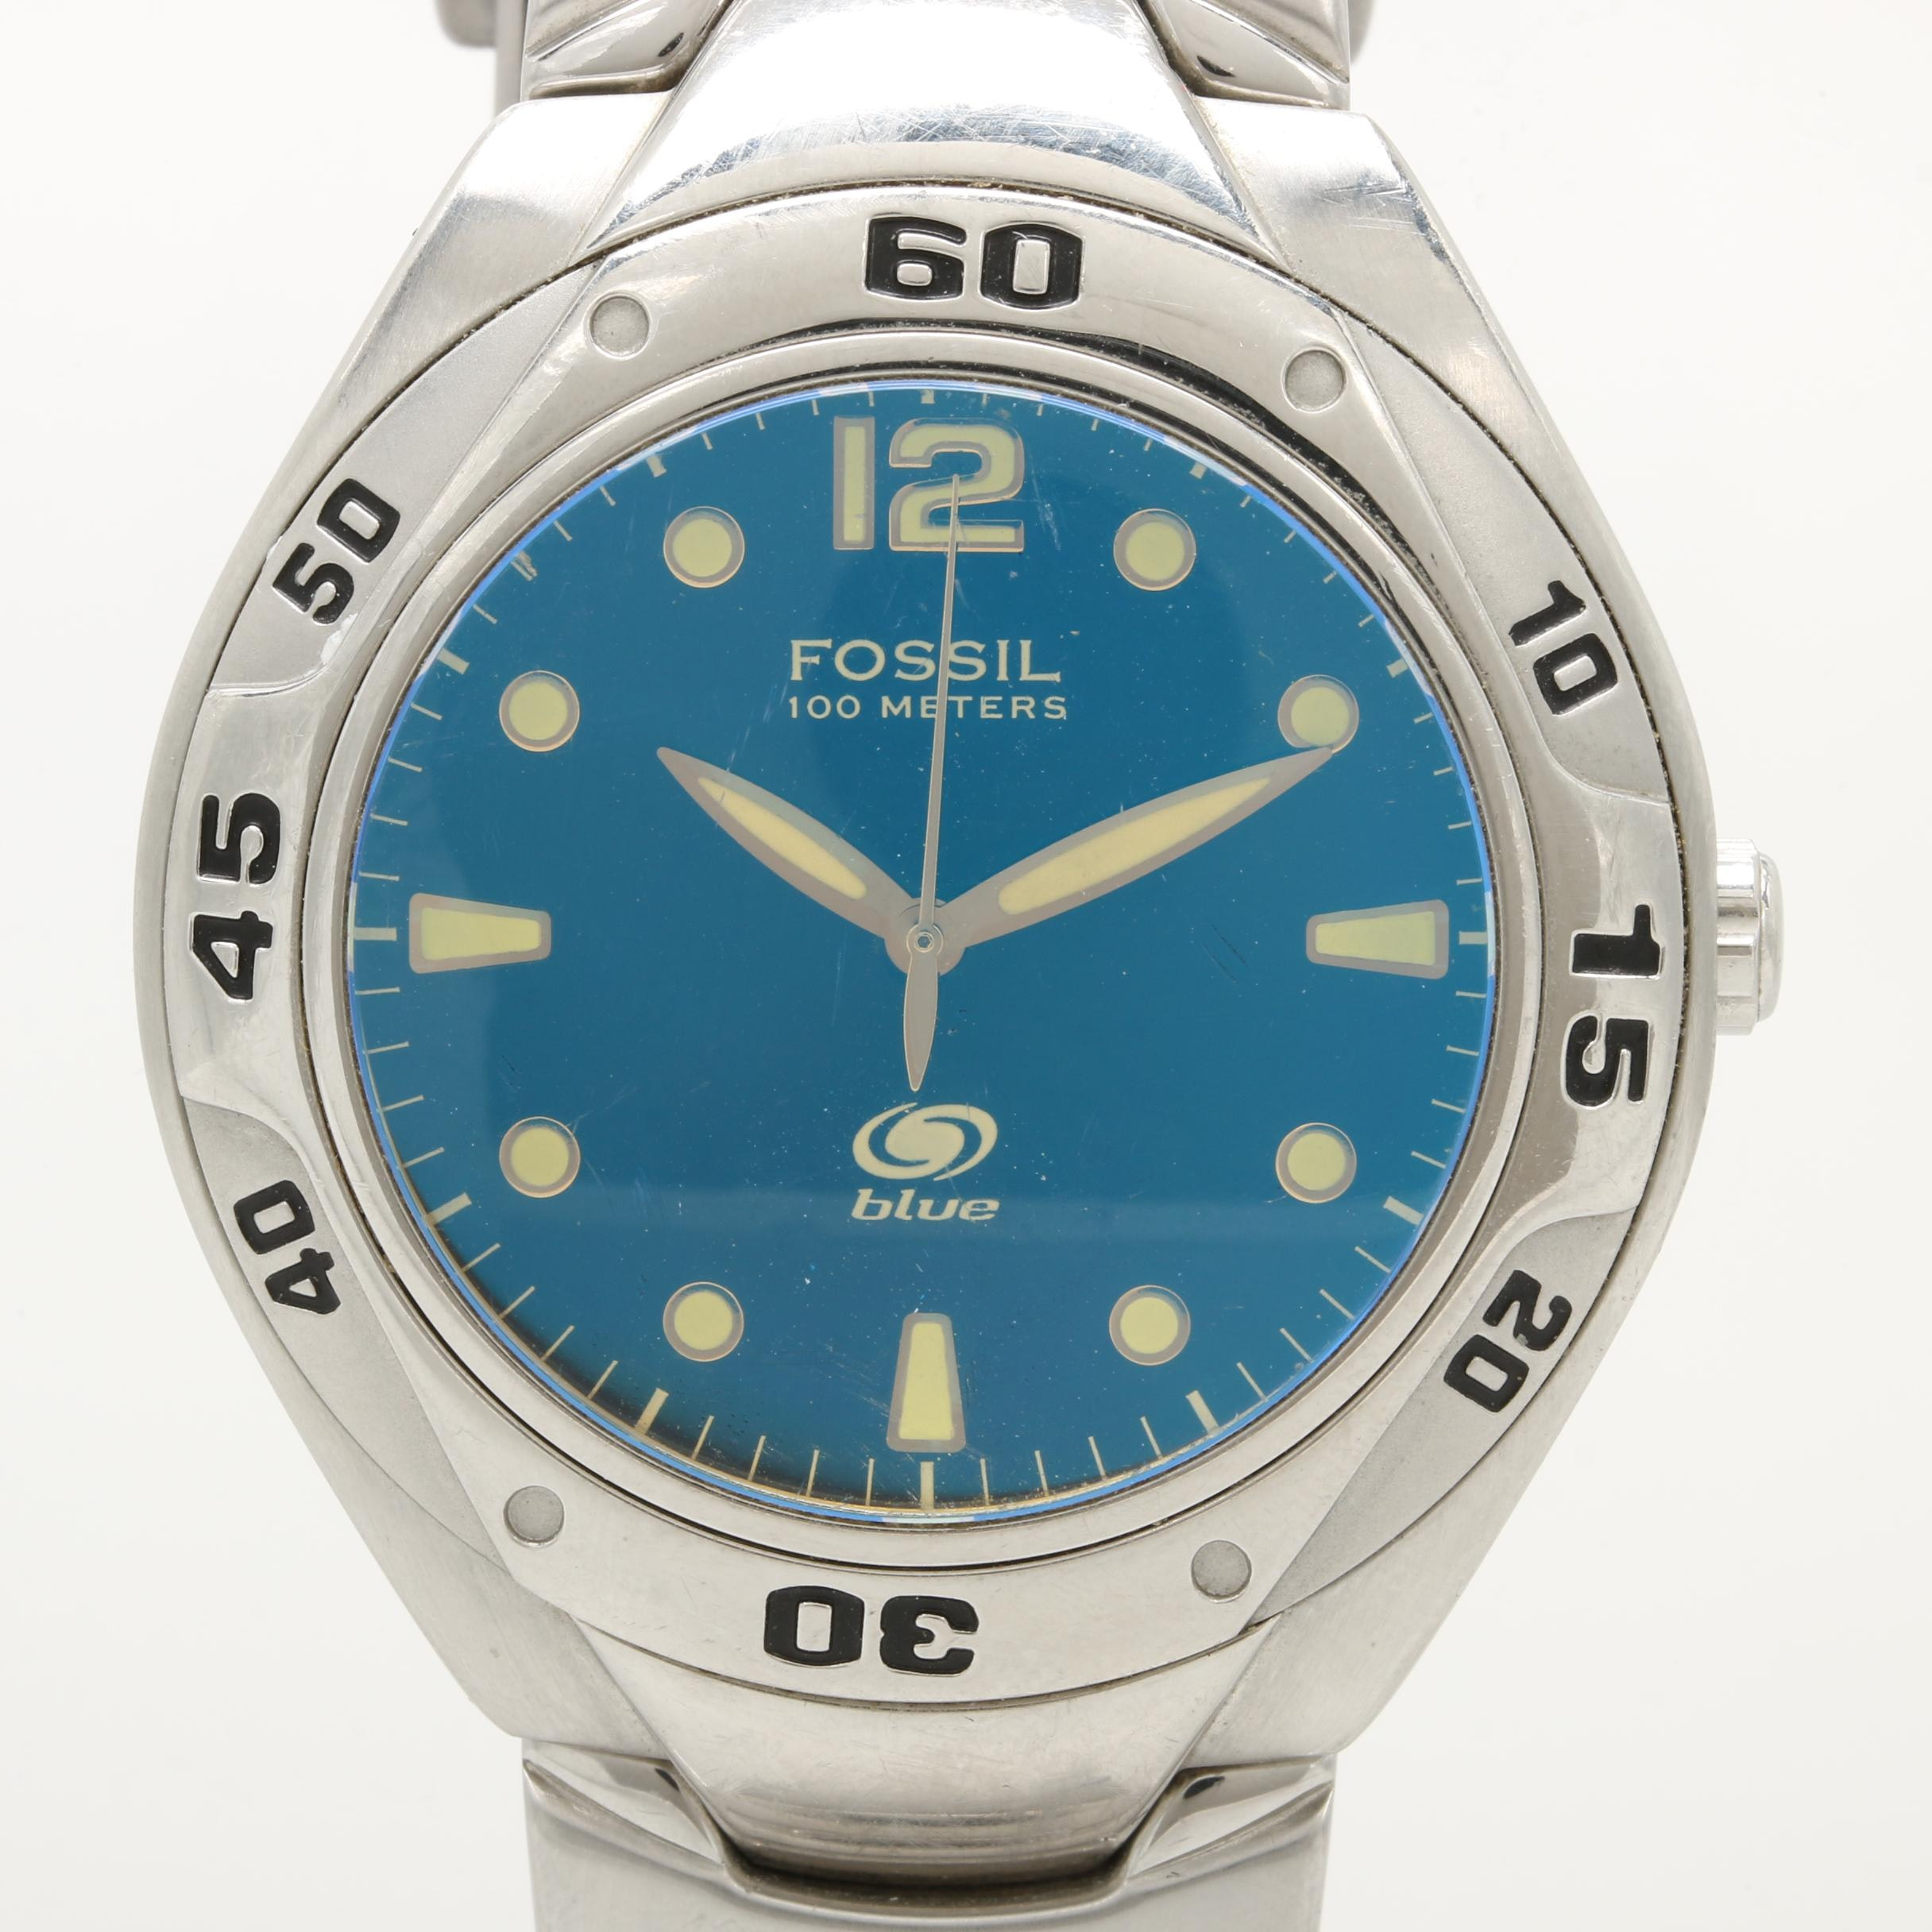 Fossil Stainless Steel Wristwatch with Blue Dial